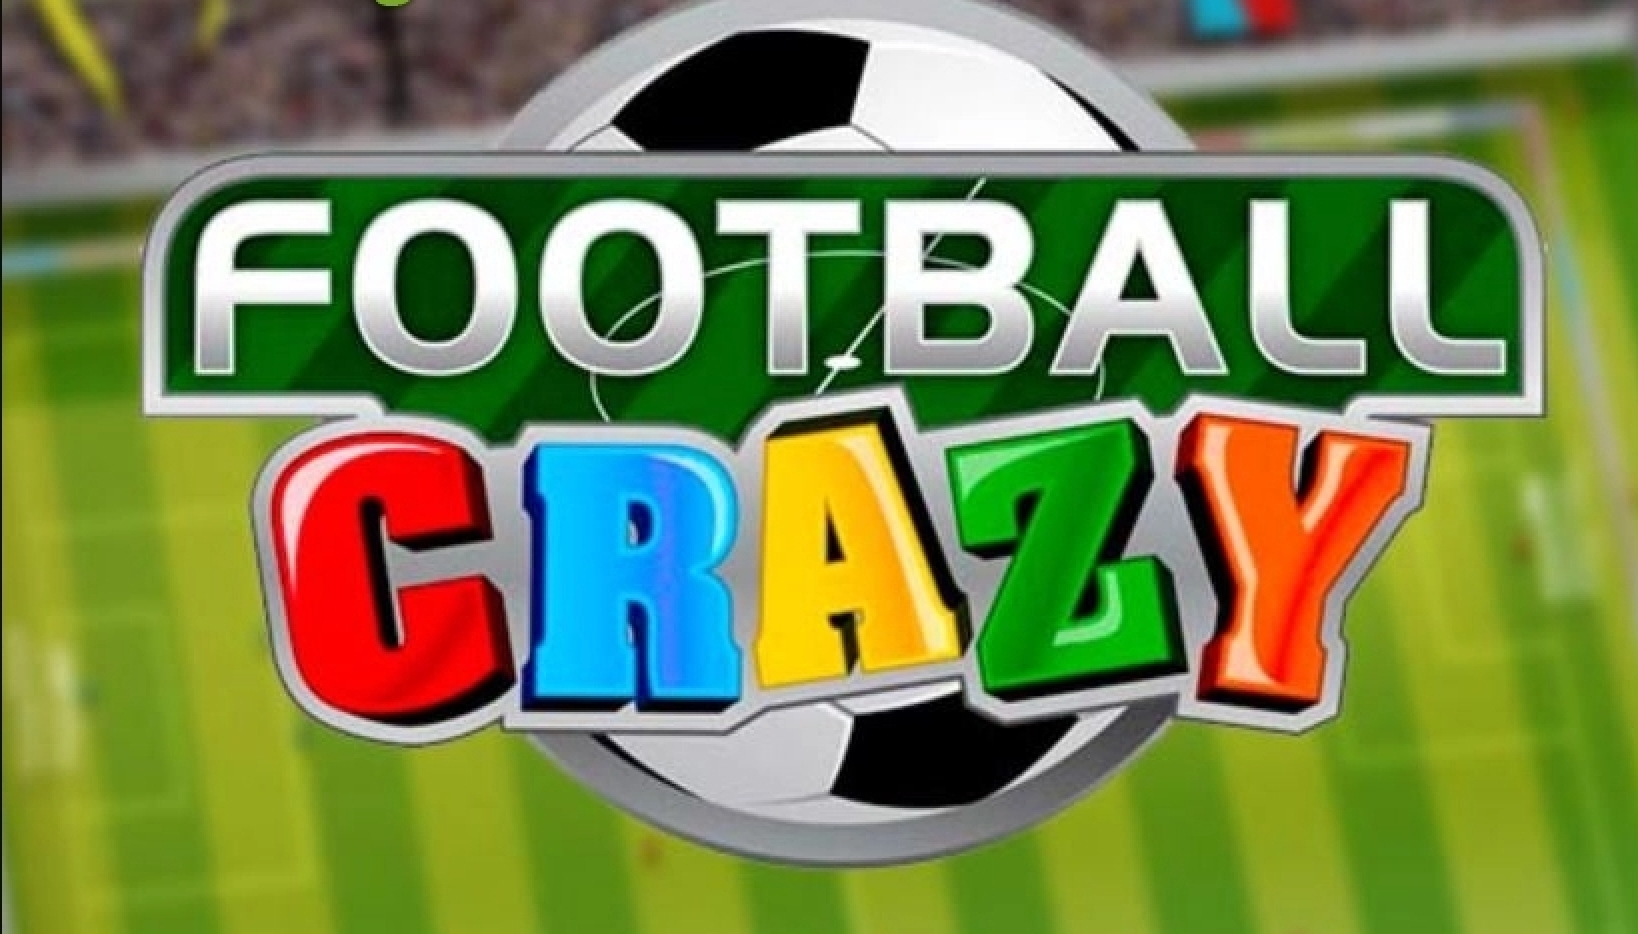 The Football Crazy Online Slot Demo Game by The Games Company